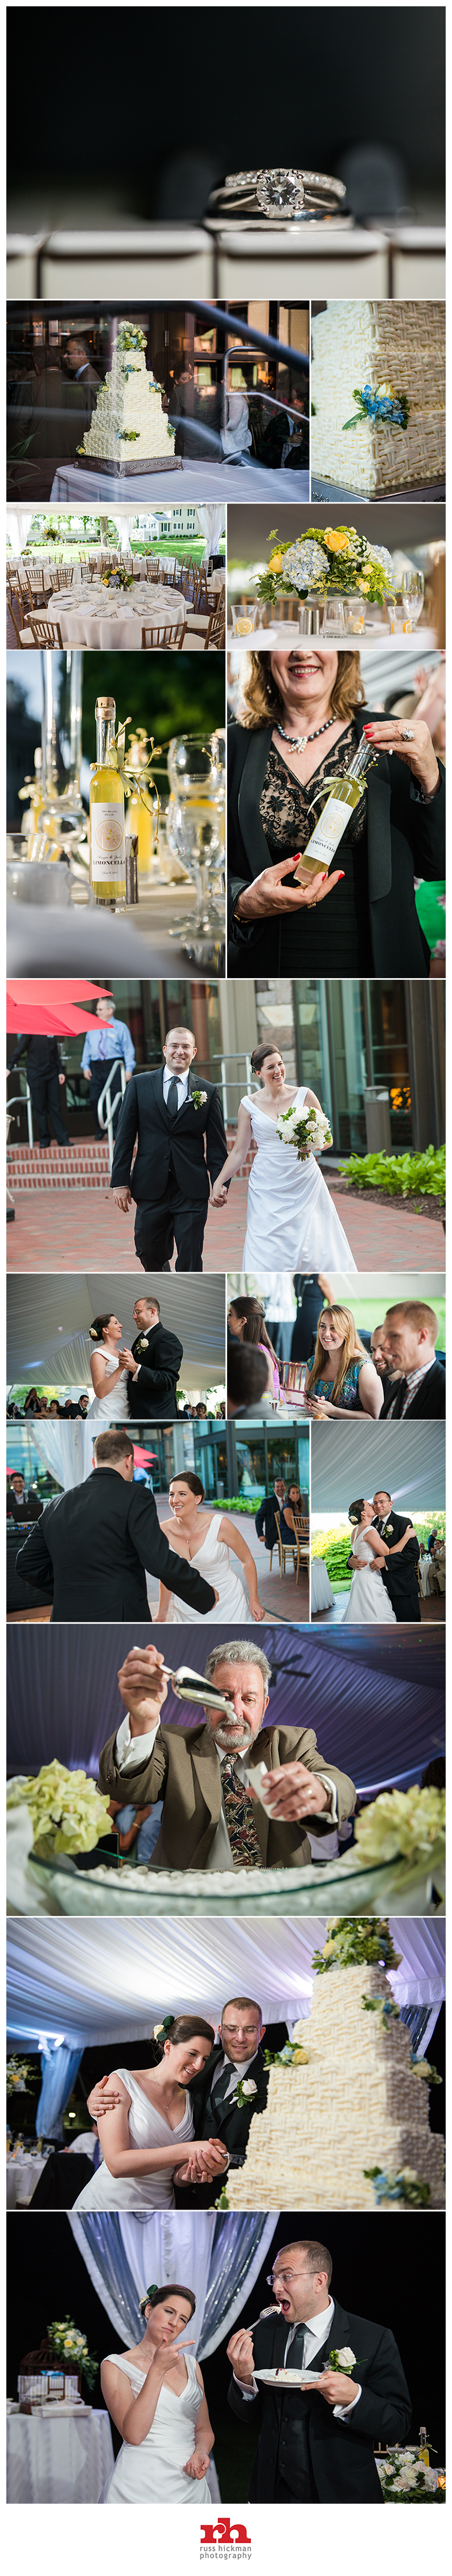 Philadelphia Wedding Photographer MZWB0006